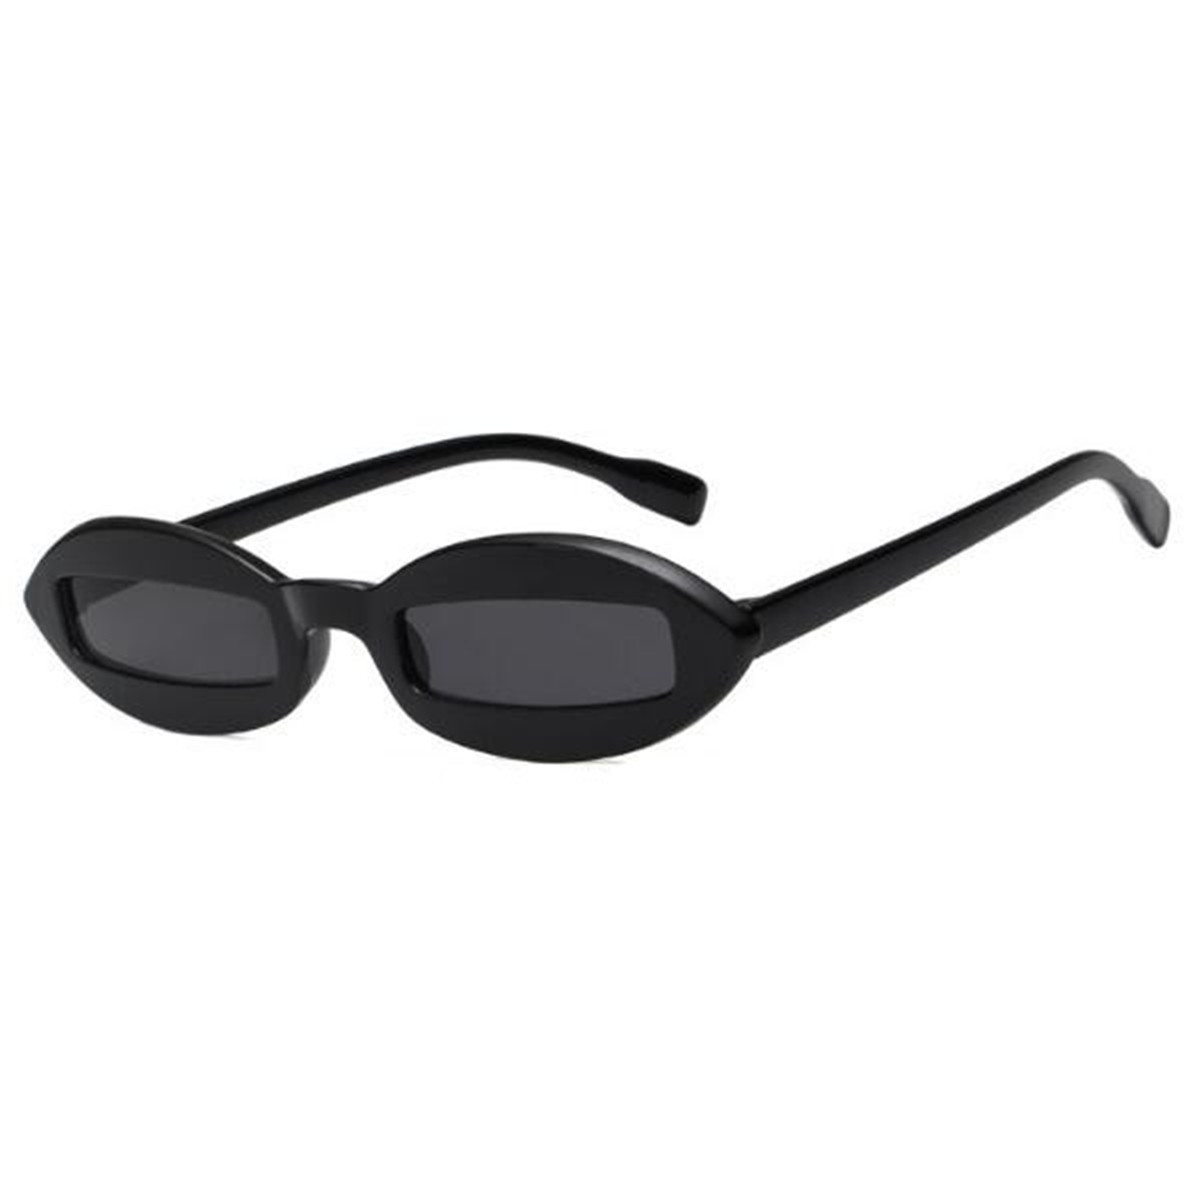 Mens Women Fashion Oval Sunglasses Cool Small Frame Eyewear Glasses ...